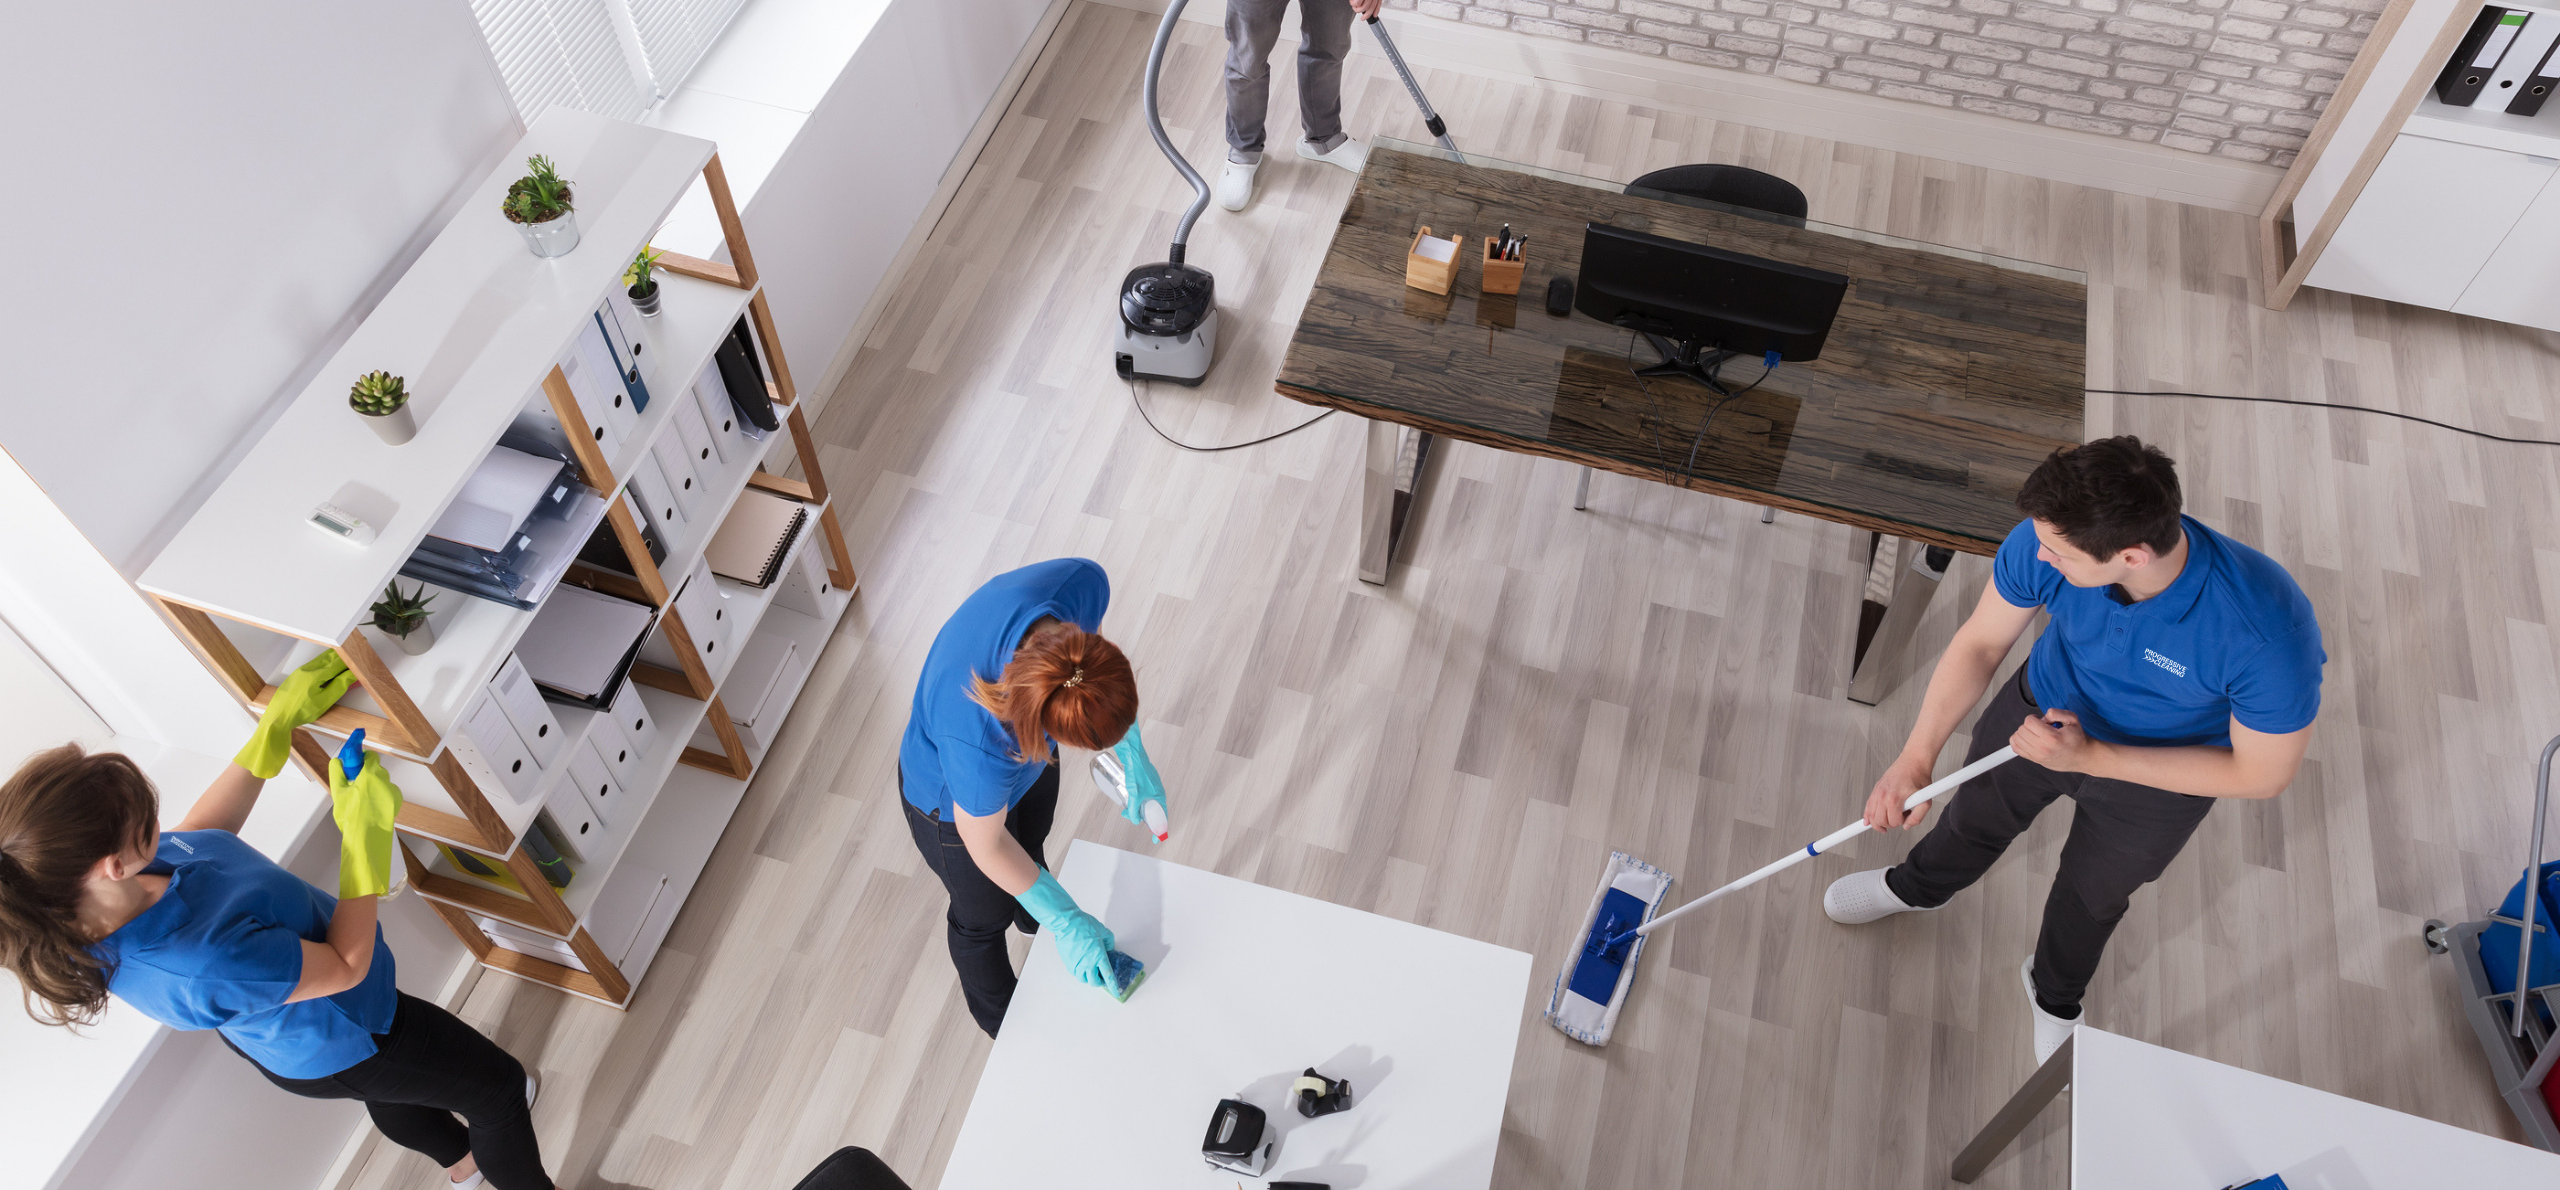 Group of janitors cleaning an office with wood floor using commercial cleaning equipment for a clean and healthy workplace